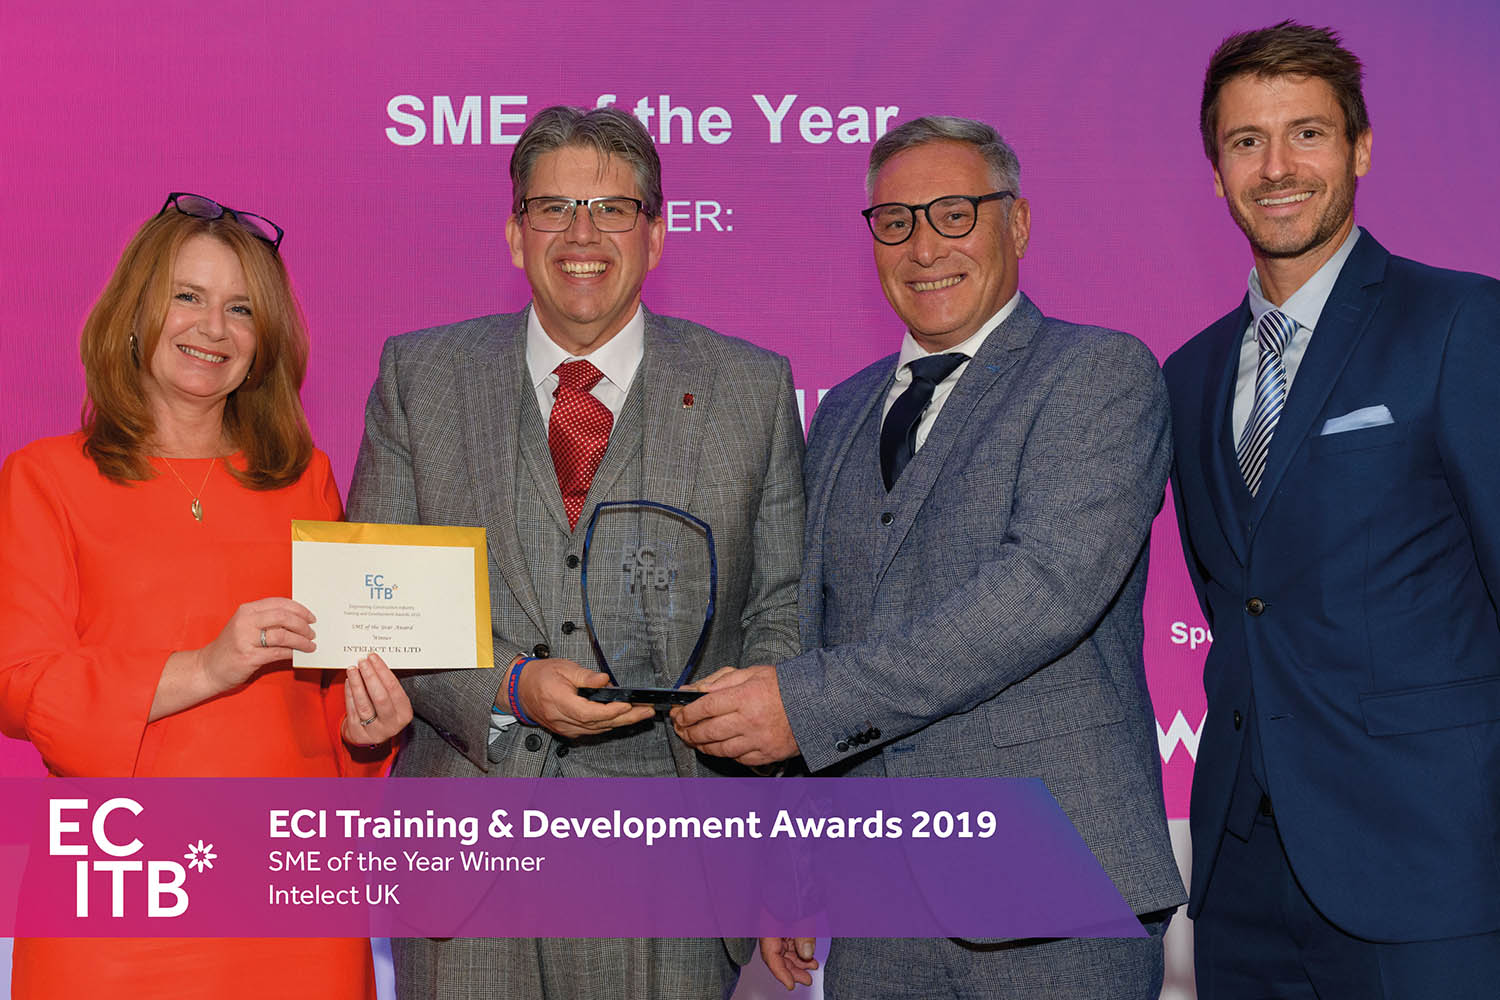 ECITB Training and Development Awards